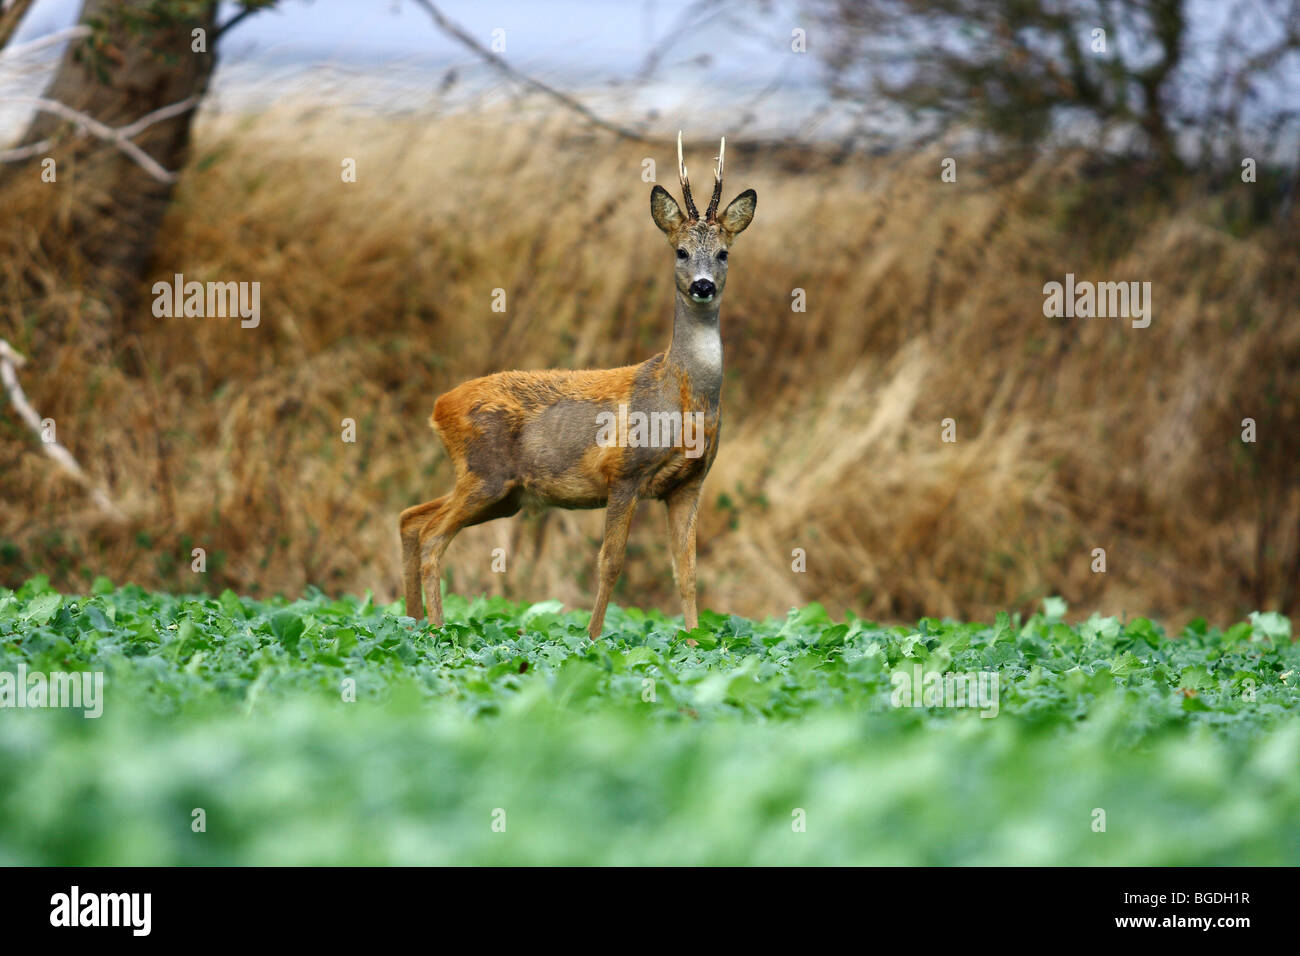 European Roe Deer (Capreolus capreolus), roebuck standing in a cabbage field after the rutting season, changing - Stock Image